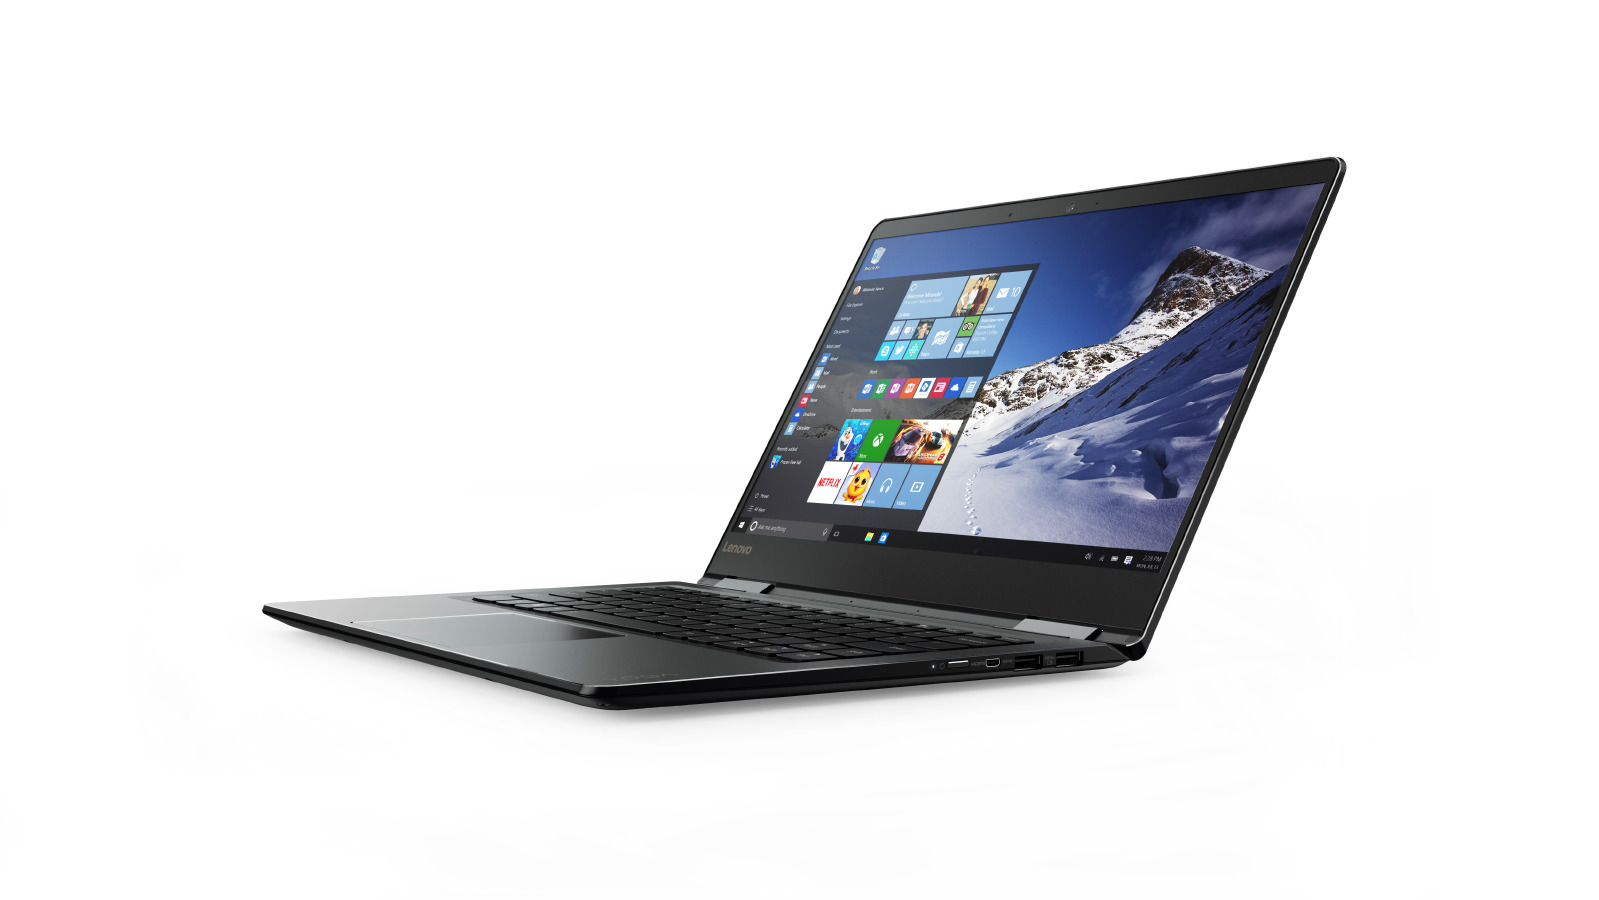 "Lenovo YOGA 710-14IKB i5-7200U 3,10GHz/8GB/SSD 256GB/14"" FHD/IPS/multitouch/GeForce 2GB/WIN10 černá 80V4007MCK"